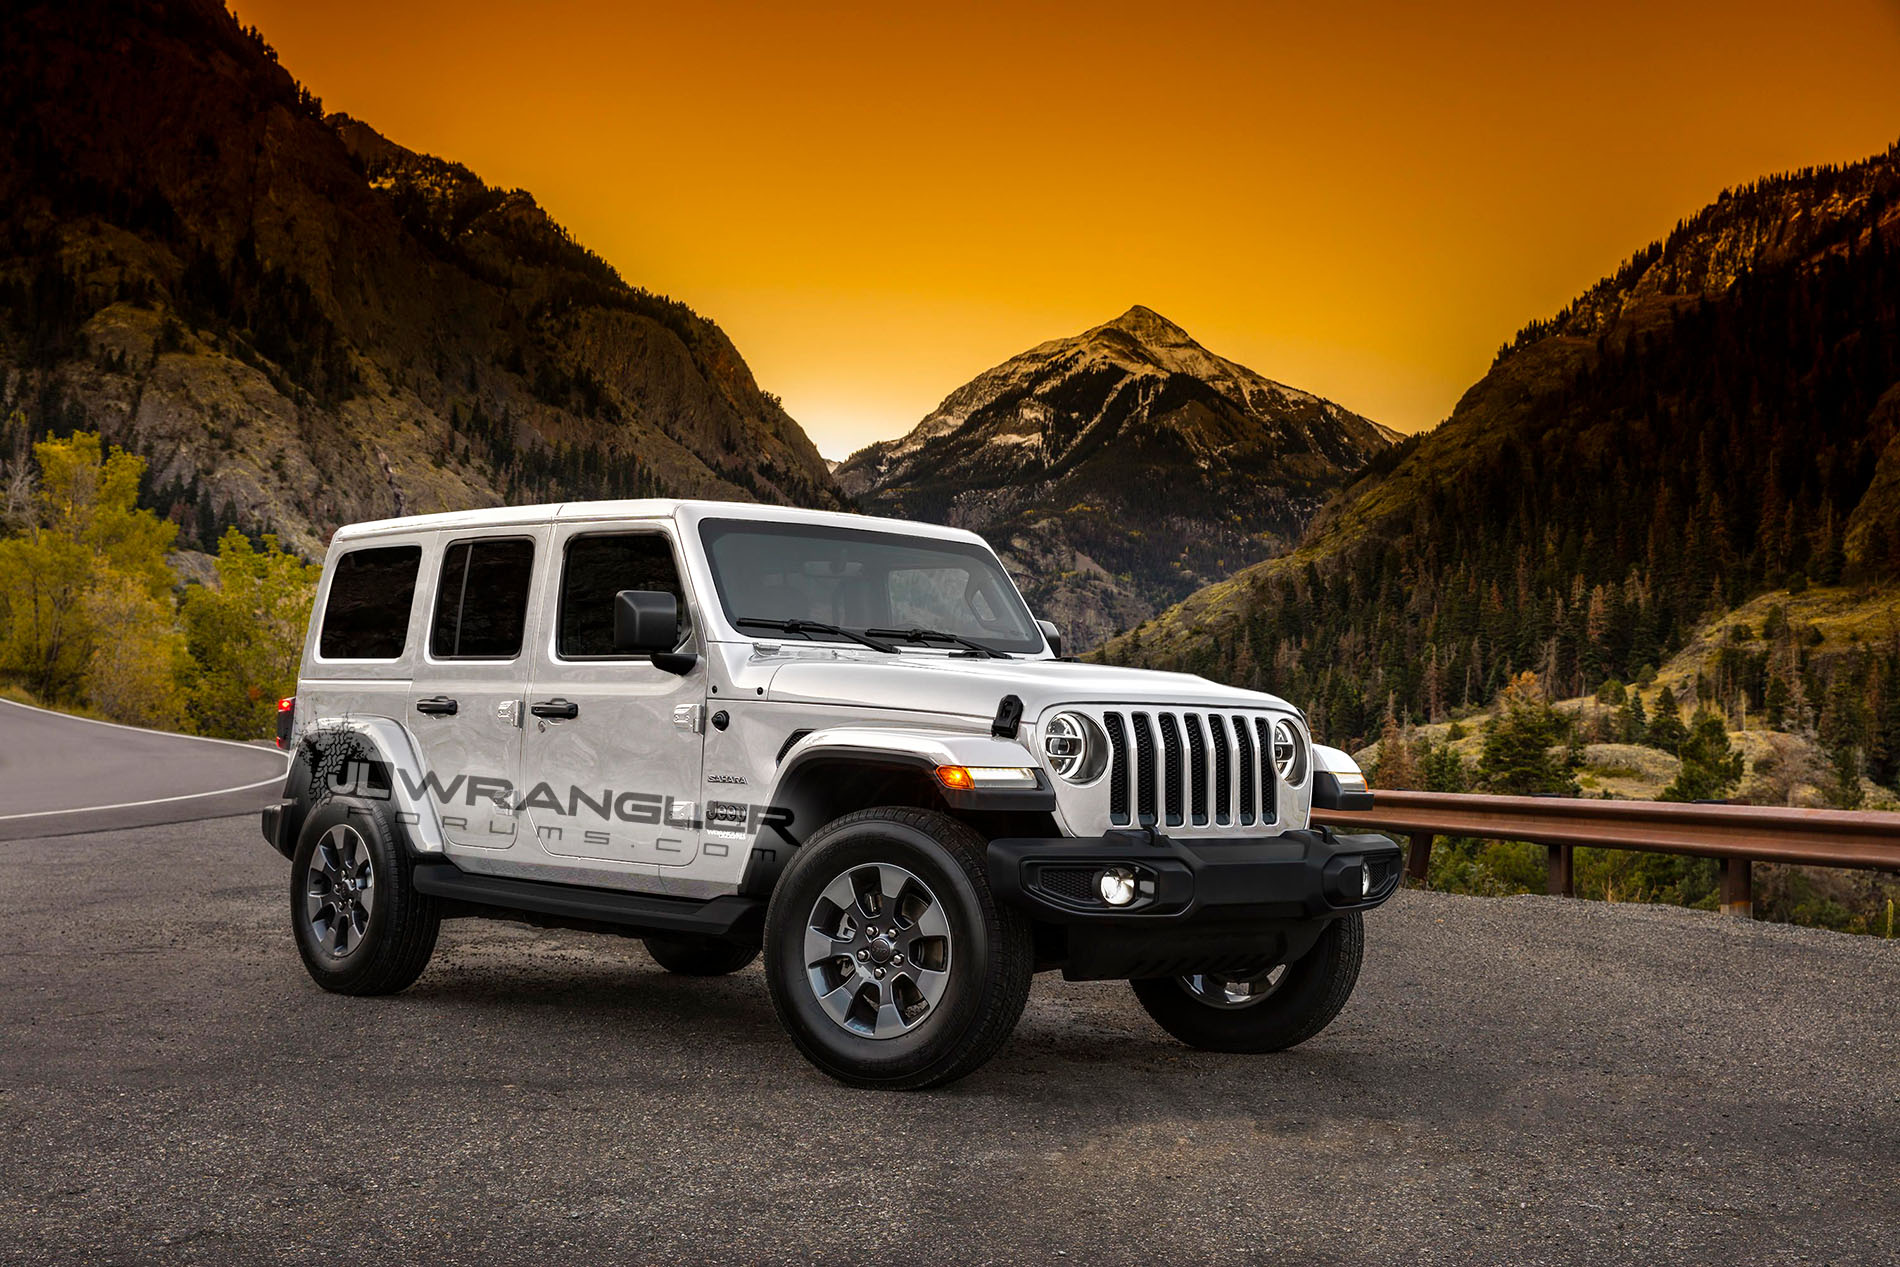 2018 jeep wrangler jl interior revealed with colorful trim and larger display autoevolution. Black Bedroom Furniture Sets. Home Design Ideas